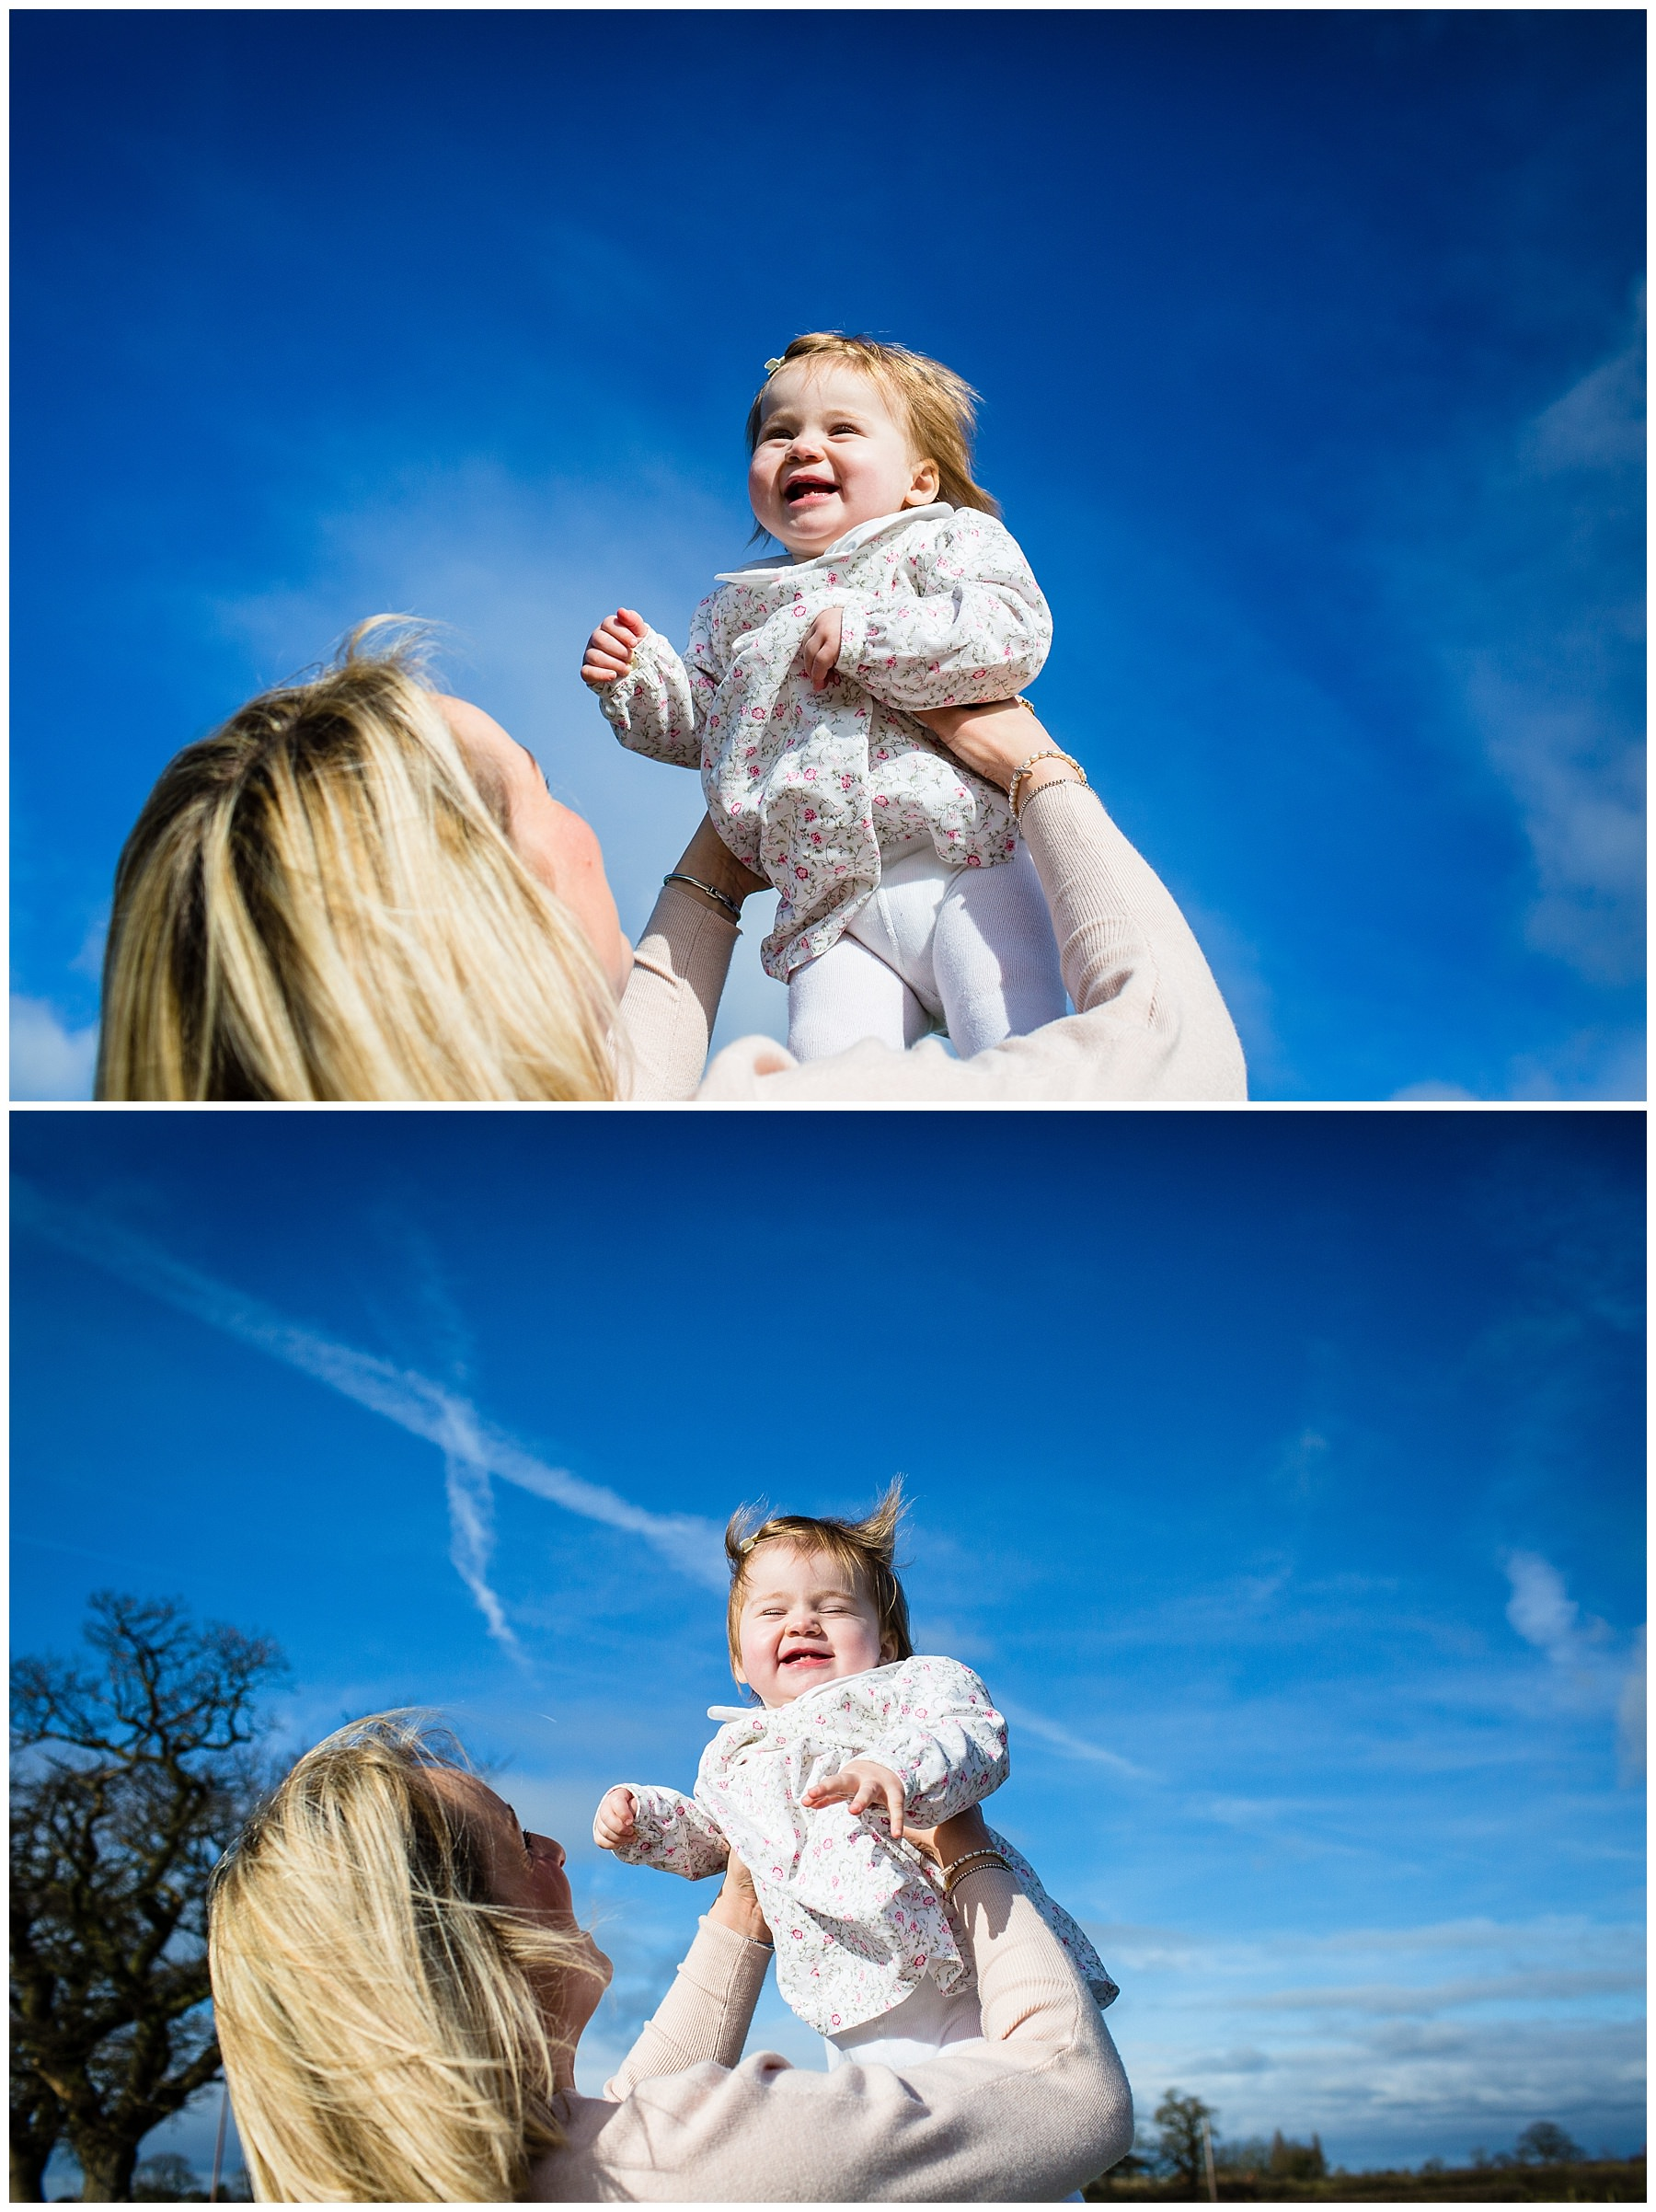 mum throwing daughter in the air and catching her with crazy hair - charlotte giddings photography